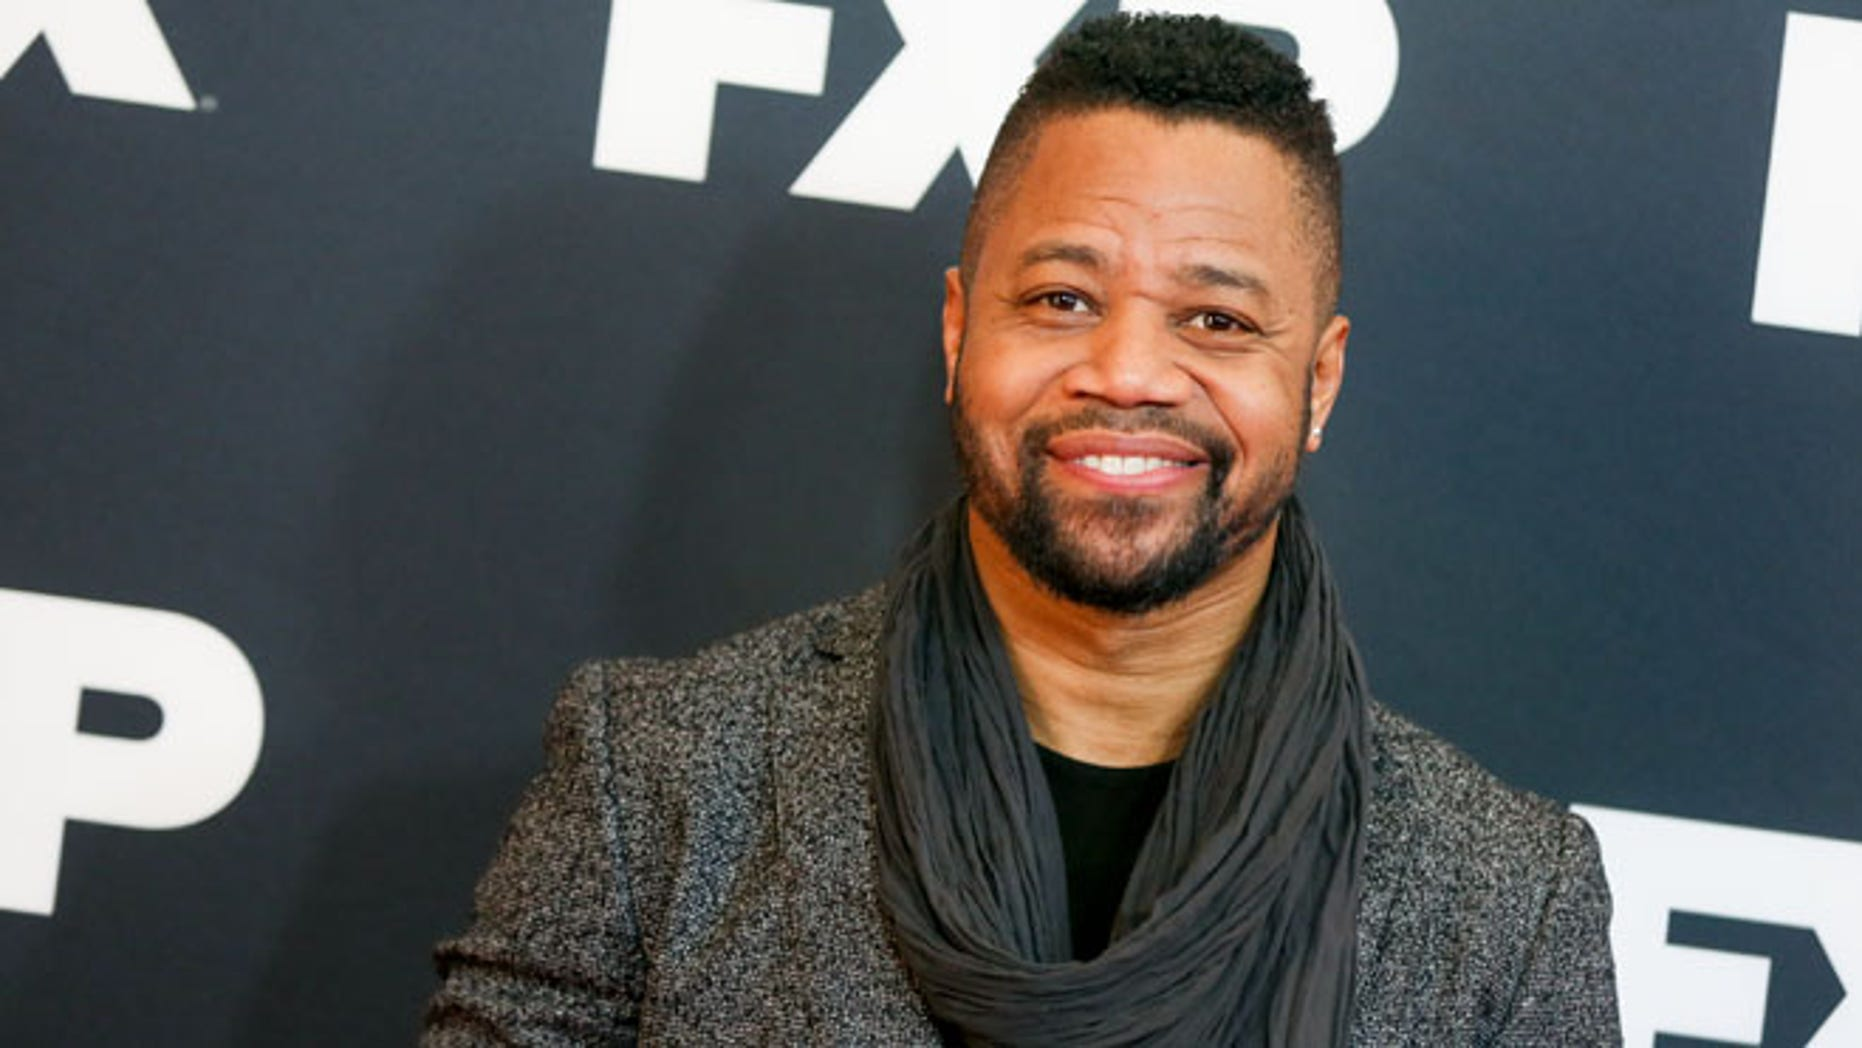 Jan 16, 2016. Cuba Gooding, Jr. arrives at the 2016 FX Winter TCA in Pasadena.